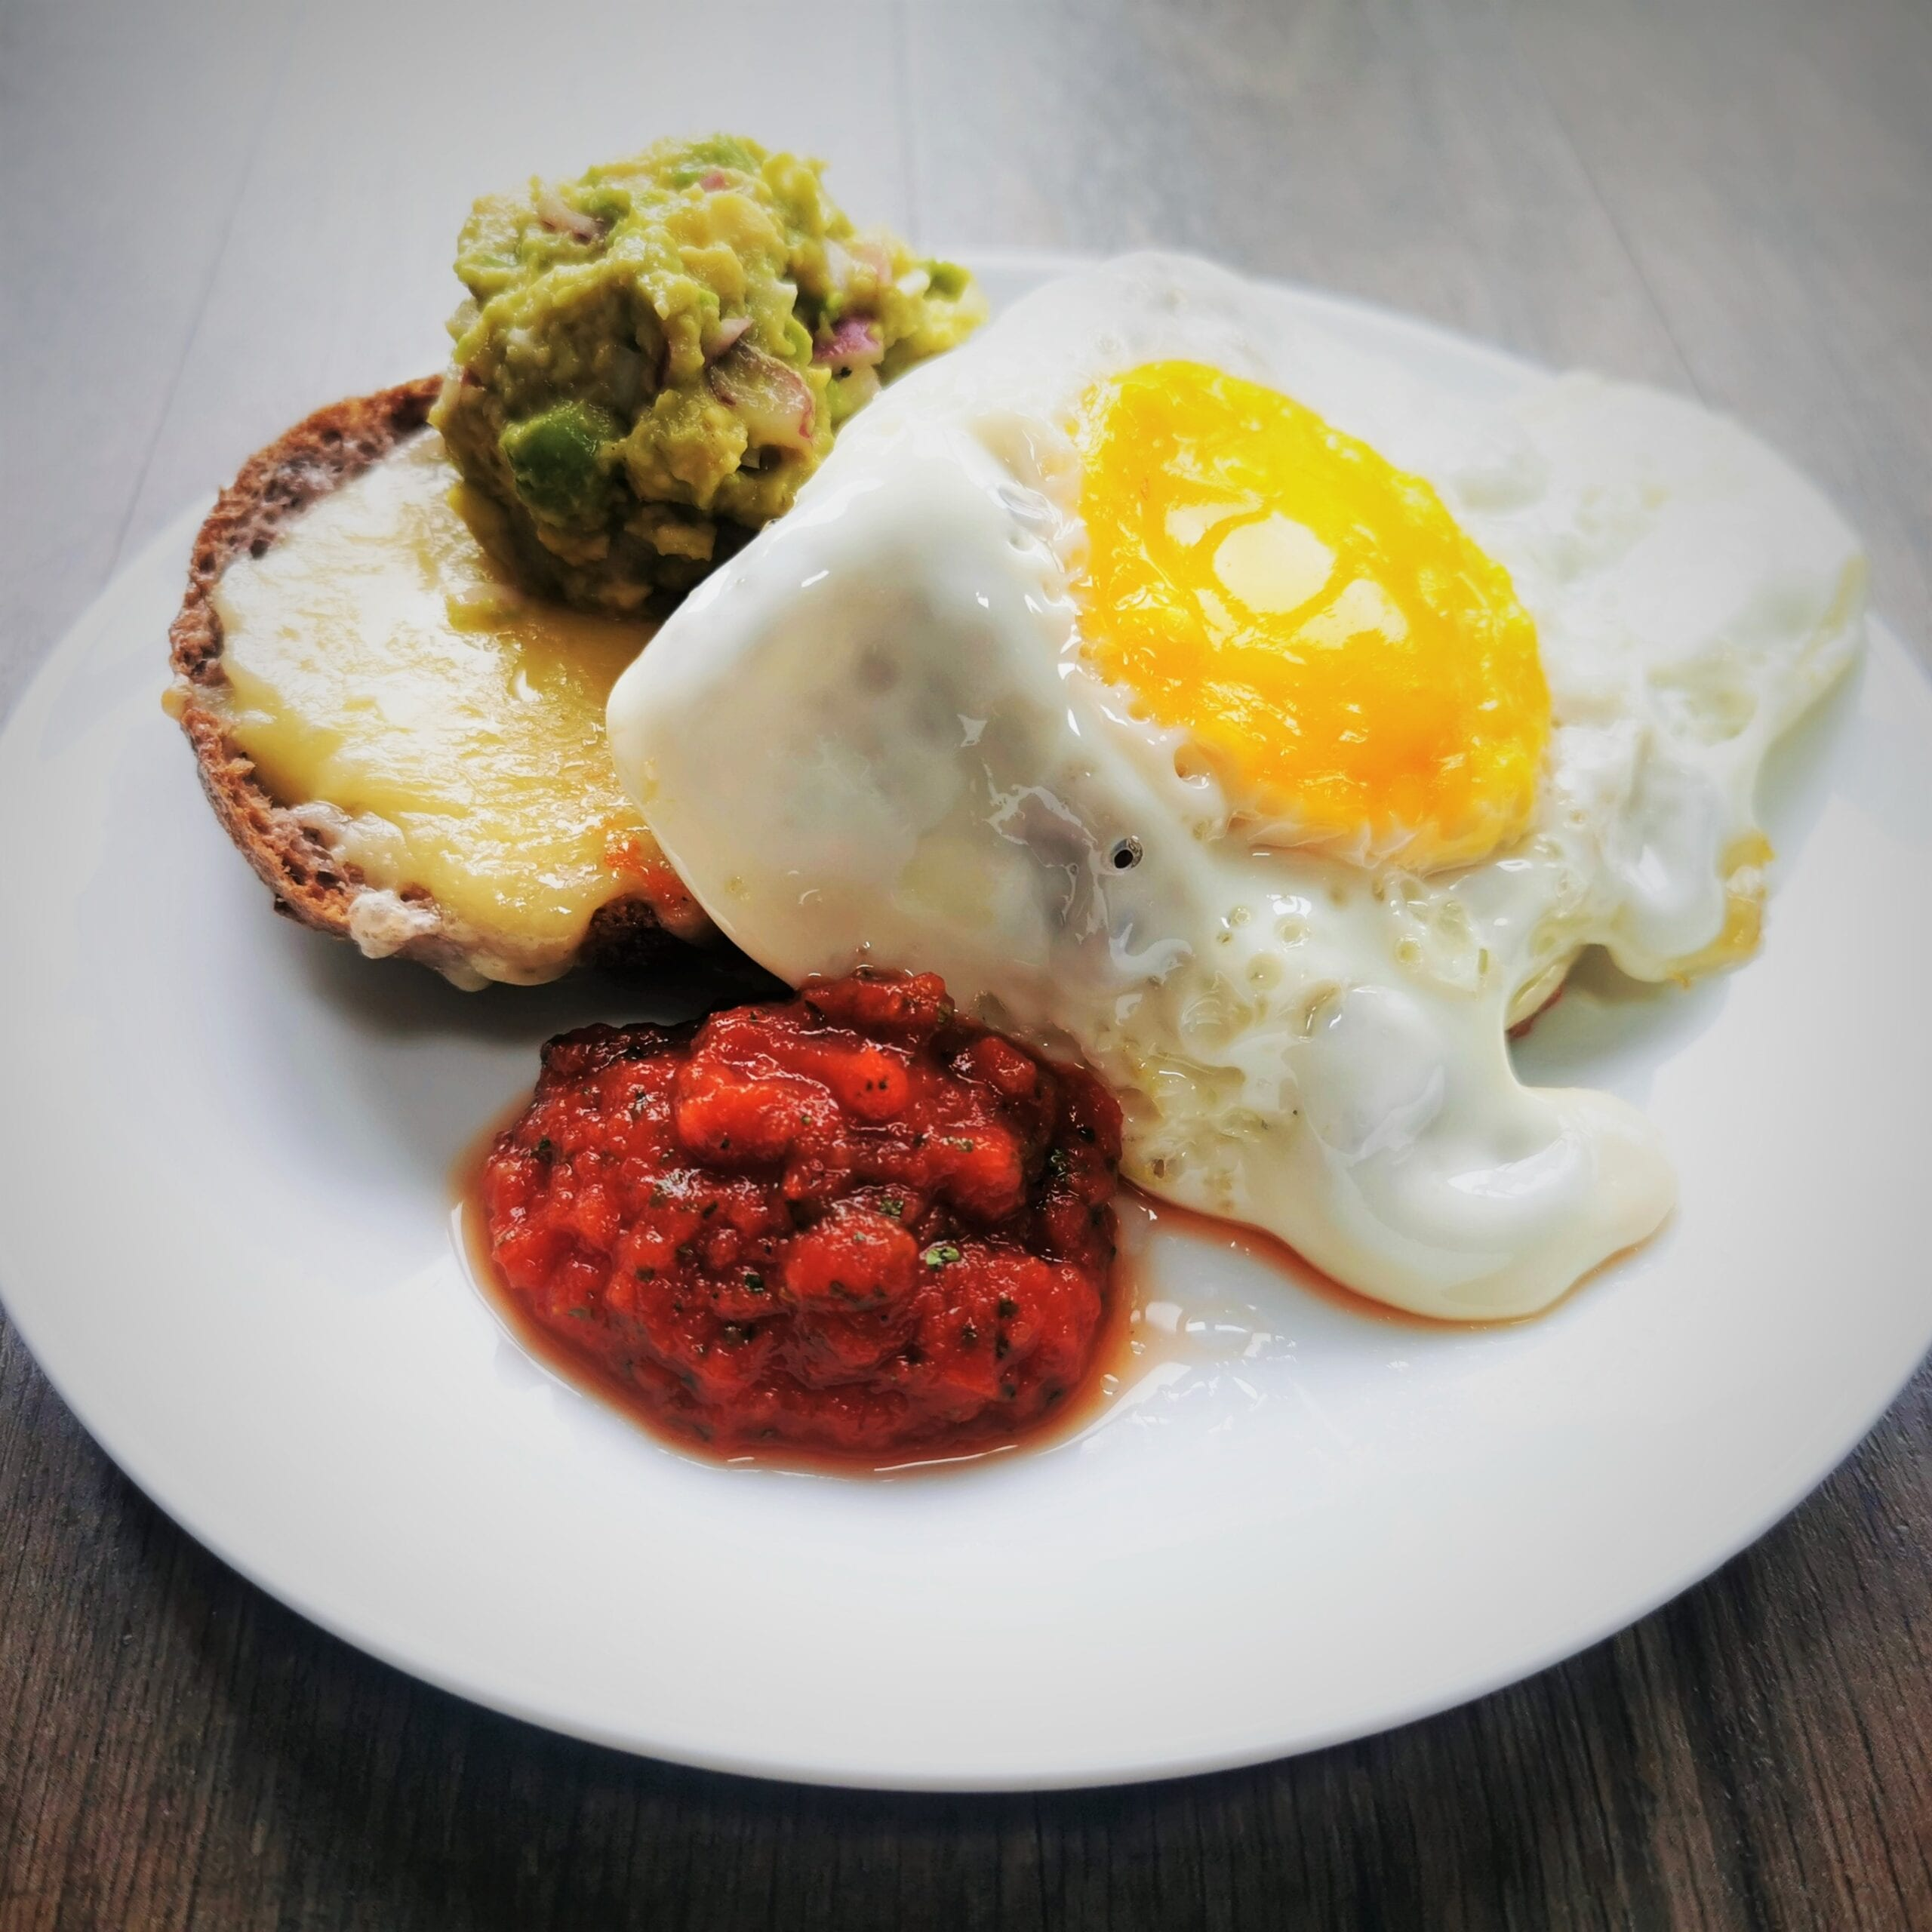 a plate with a fried egg on a cheese covered low carb roll with guacamole and salsa